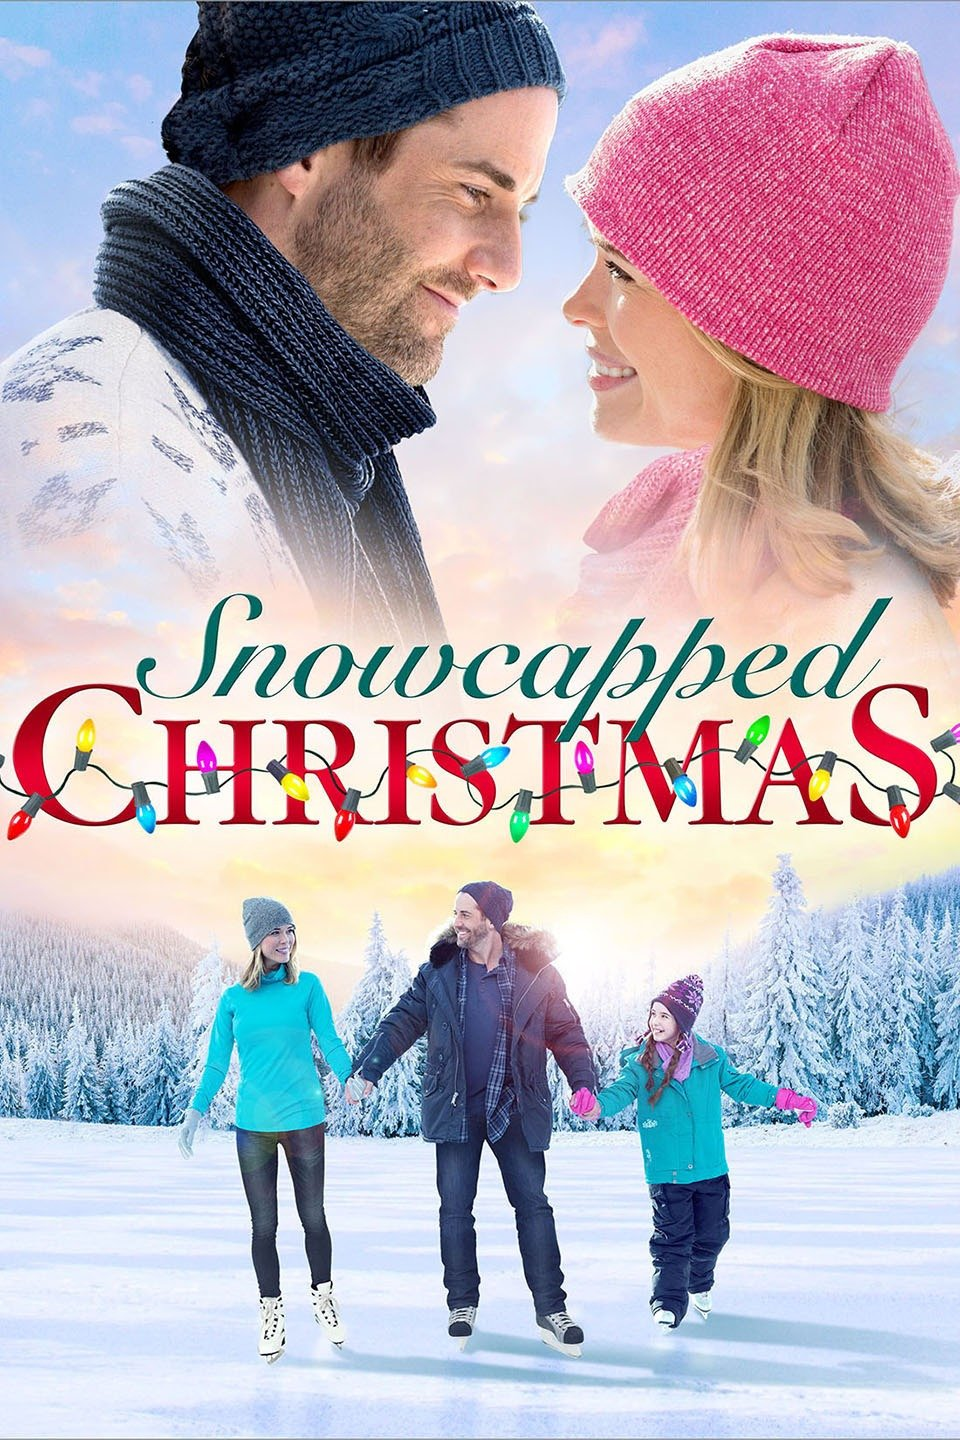 A Snow Capped Christmas (2016)